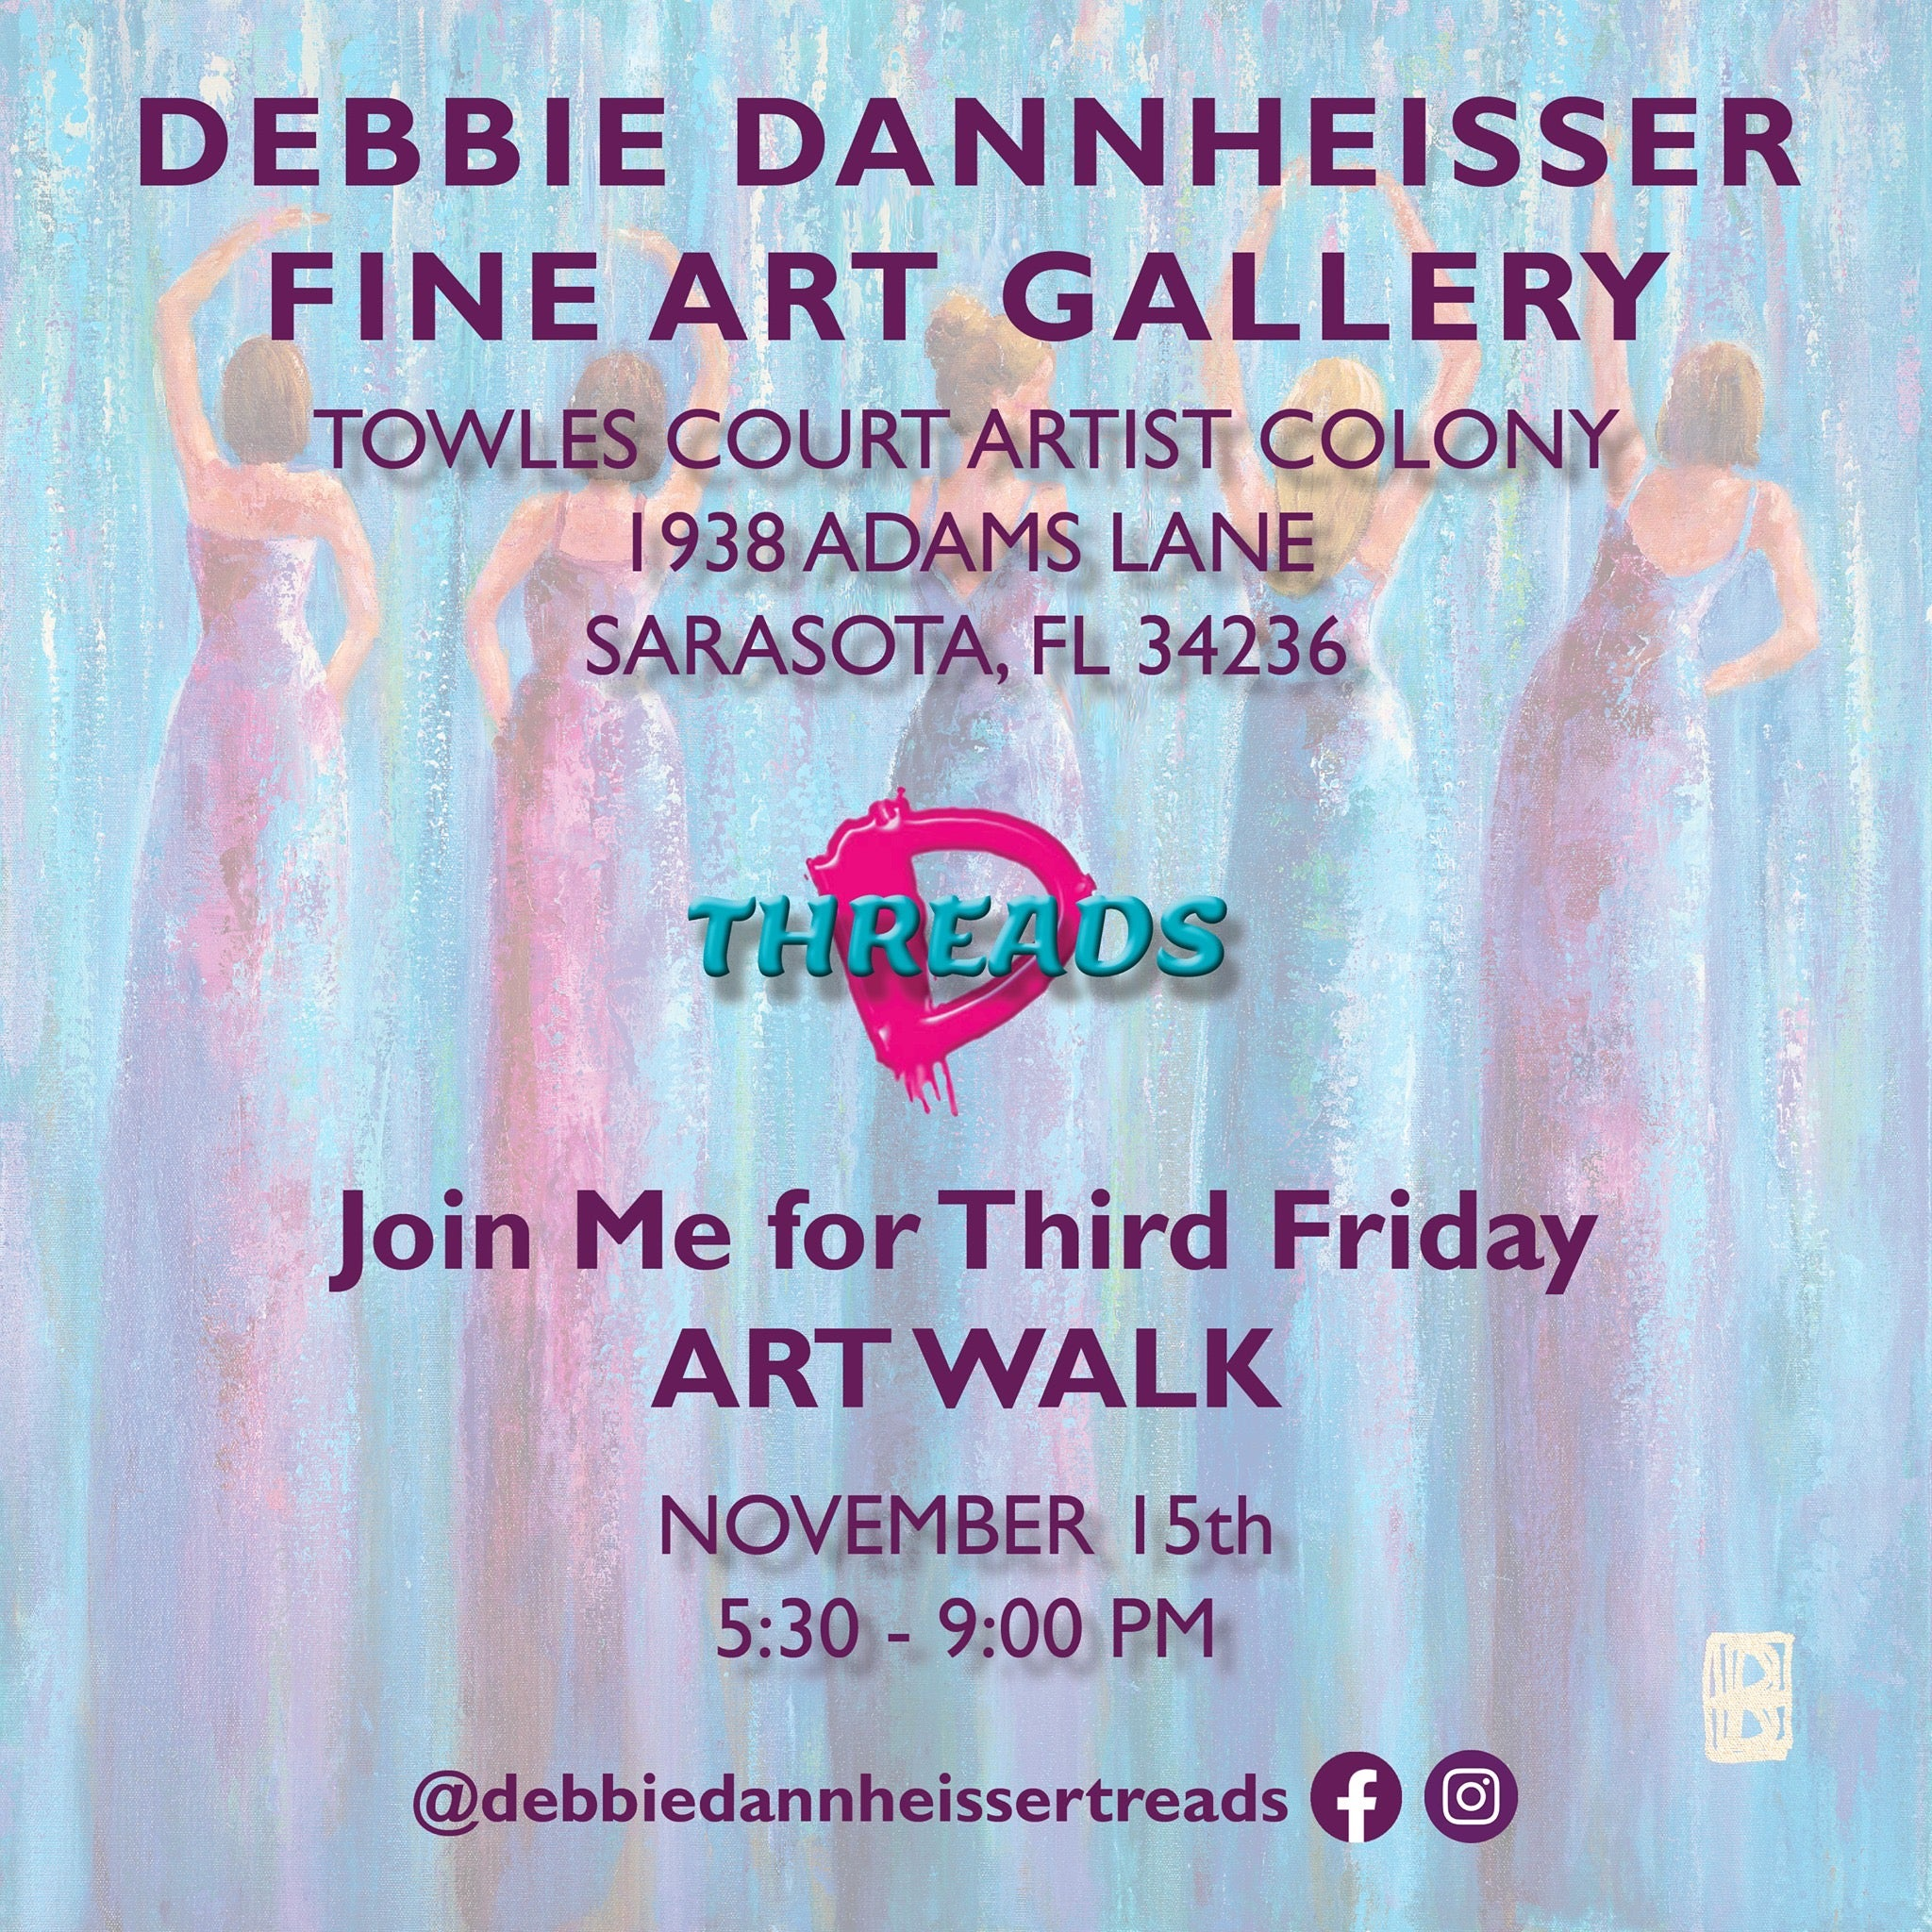 Join Me for Third Friday ART WALK November 15th!